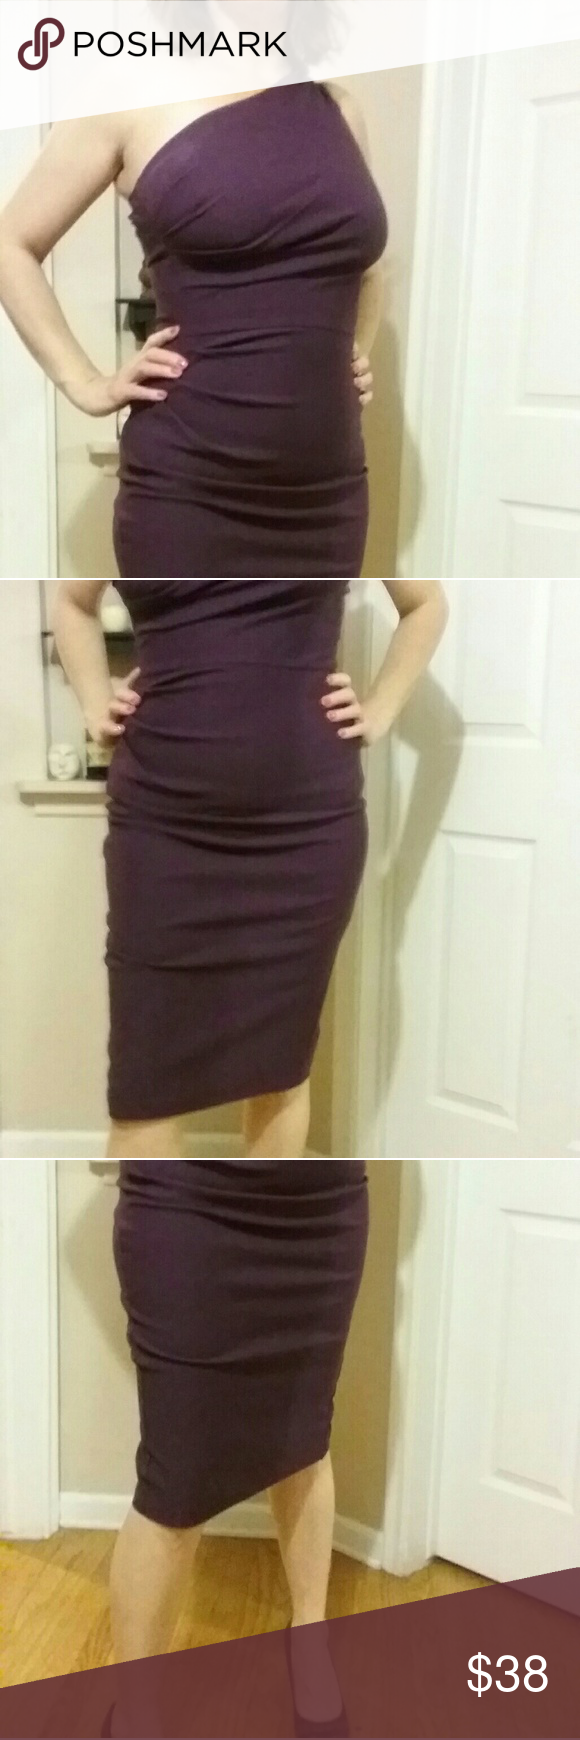 stop staring ruched dress in eggplant My favorite party dress. This runs small, Im normally a 12 and this 14 is REAL snug. The shape is so flattering and I have felt like a million bucks every time Ive worn it. Stop Staring Dresses Midi